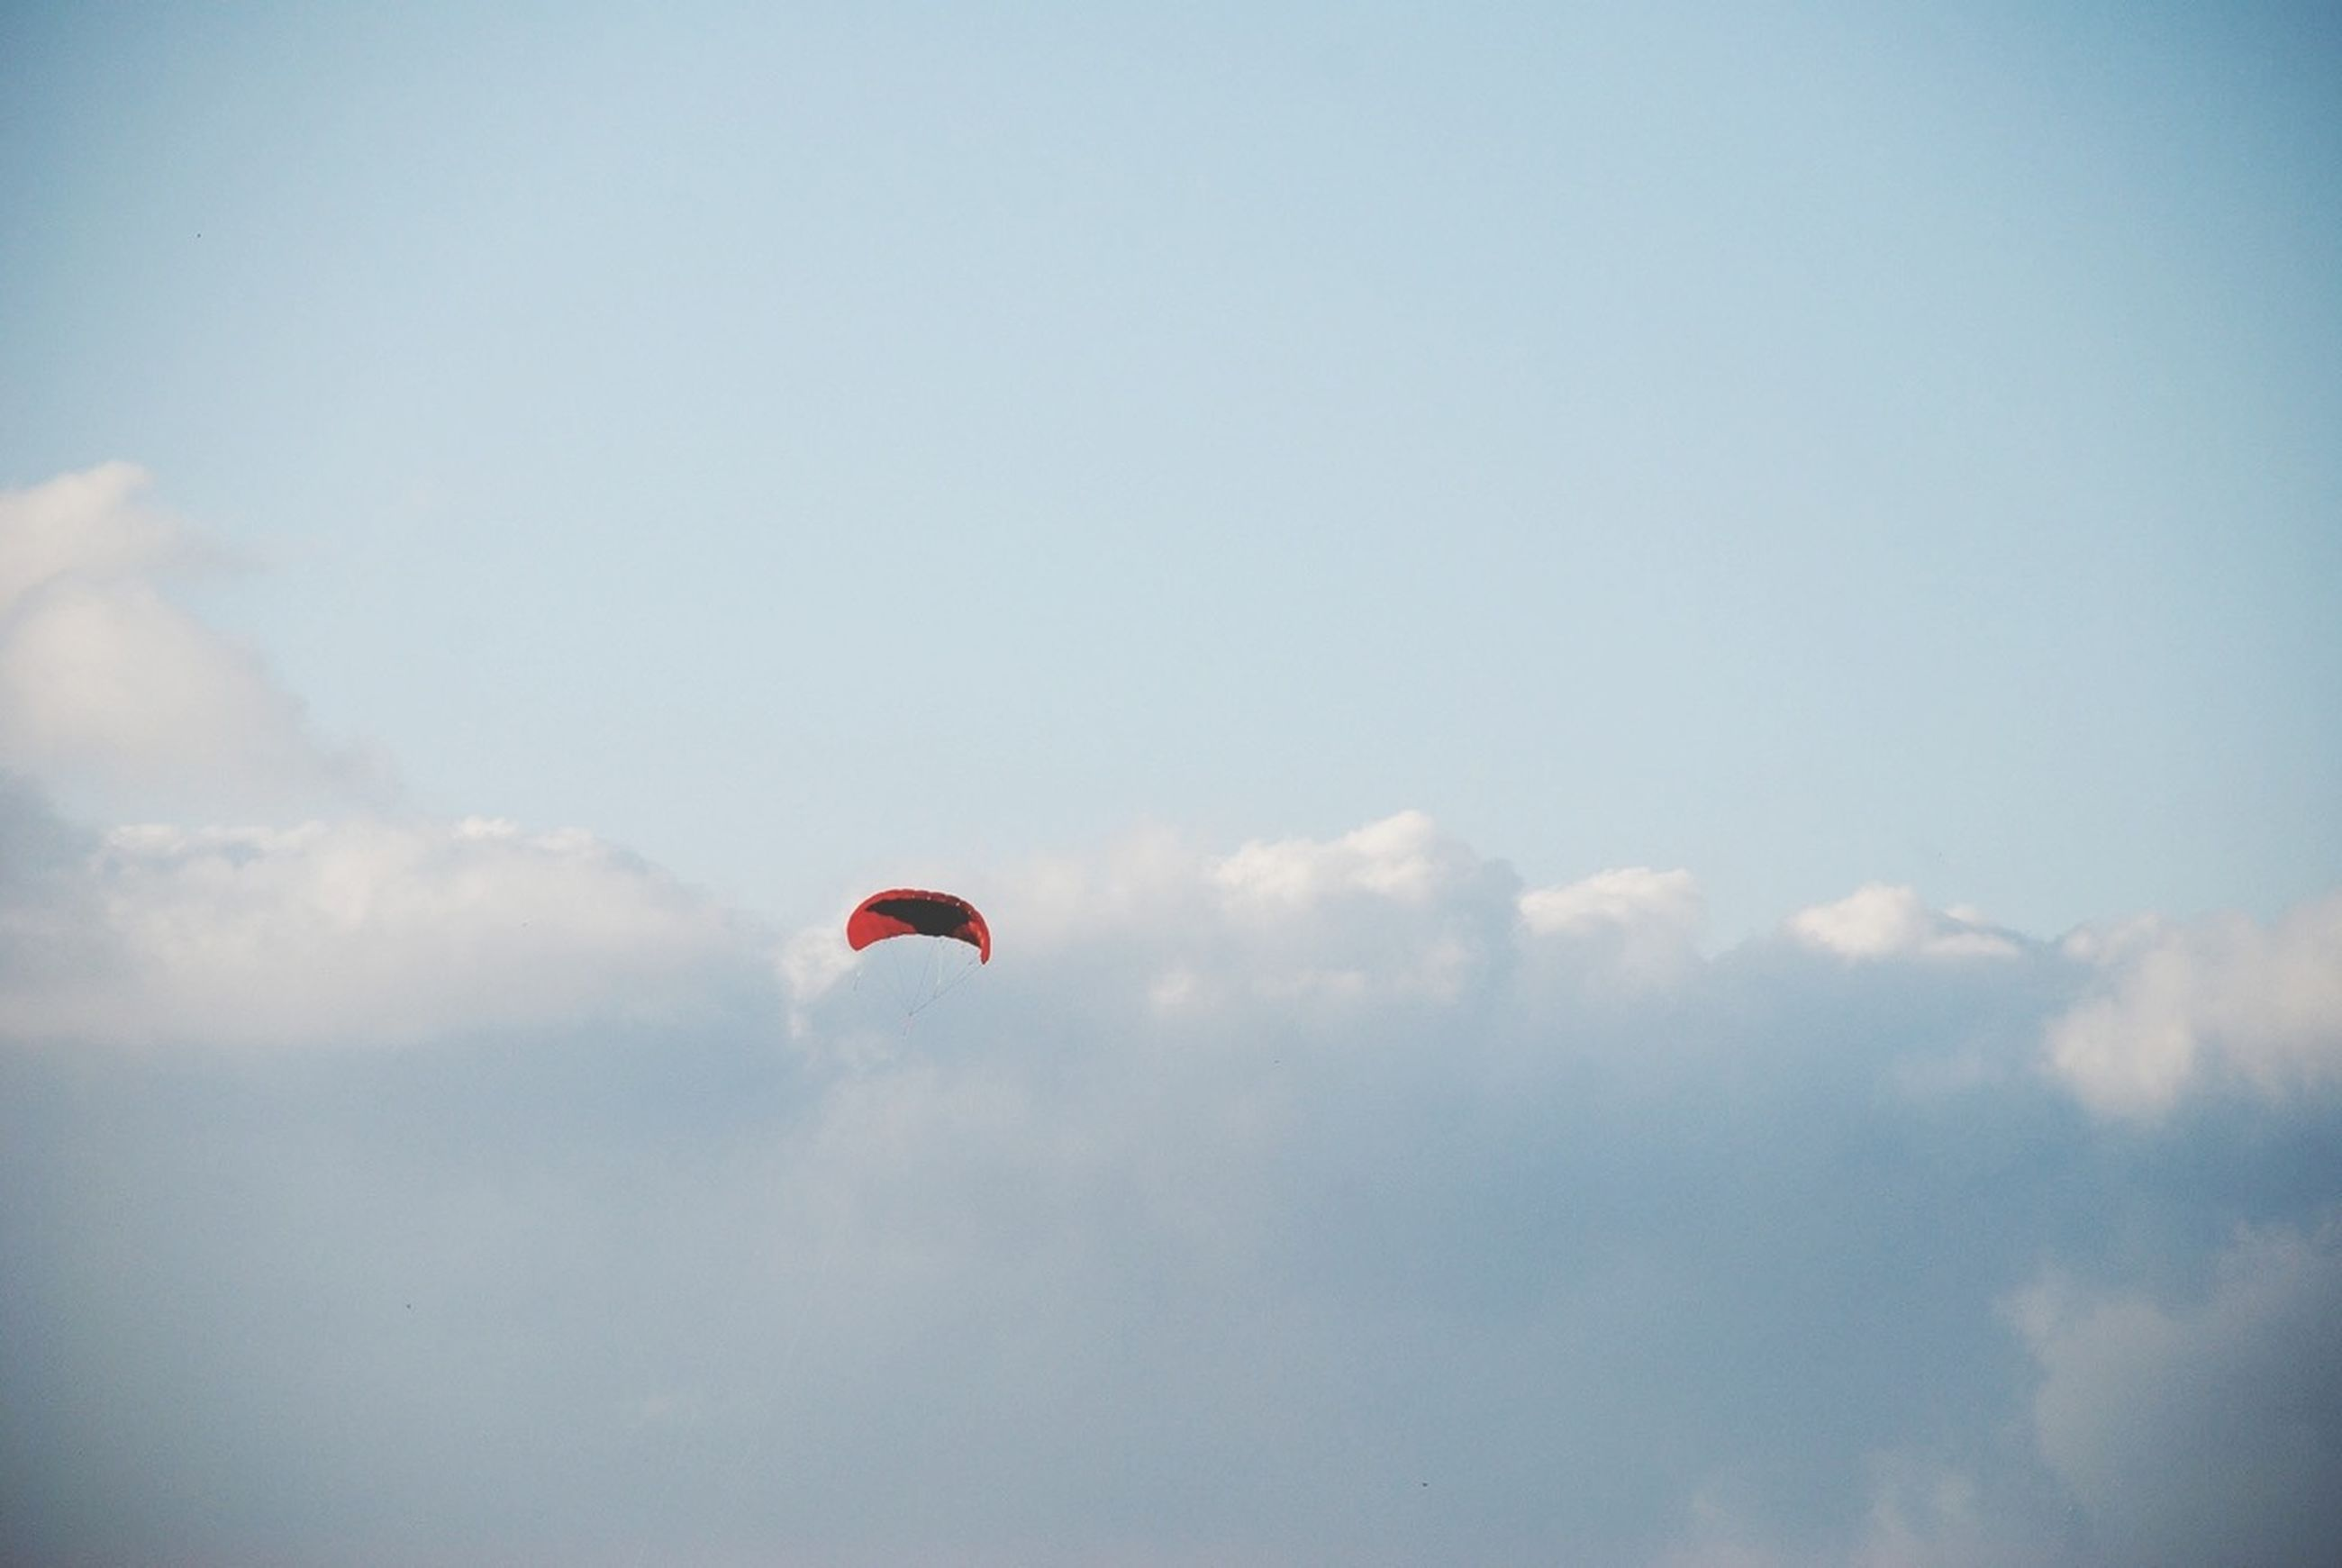 low angle view, mid-air, sky, flying, parachute, cloud - sky, adventure, extreme sports, paragliding, freedom, leisure activity, sport, cloud, exhilaration, hot air balloon, unrecognizable person, outdoors, day